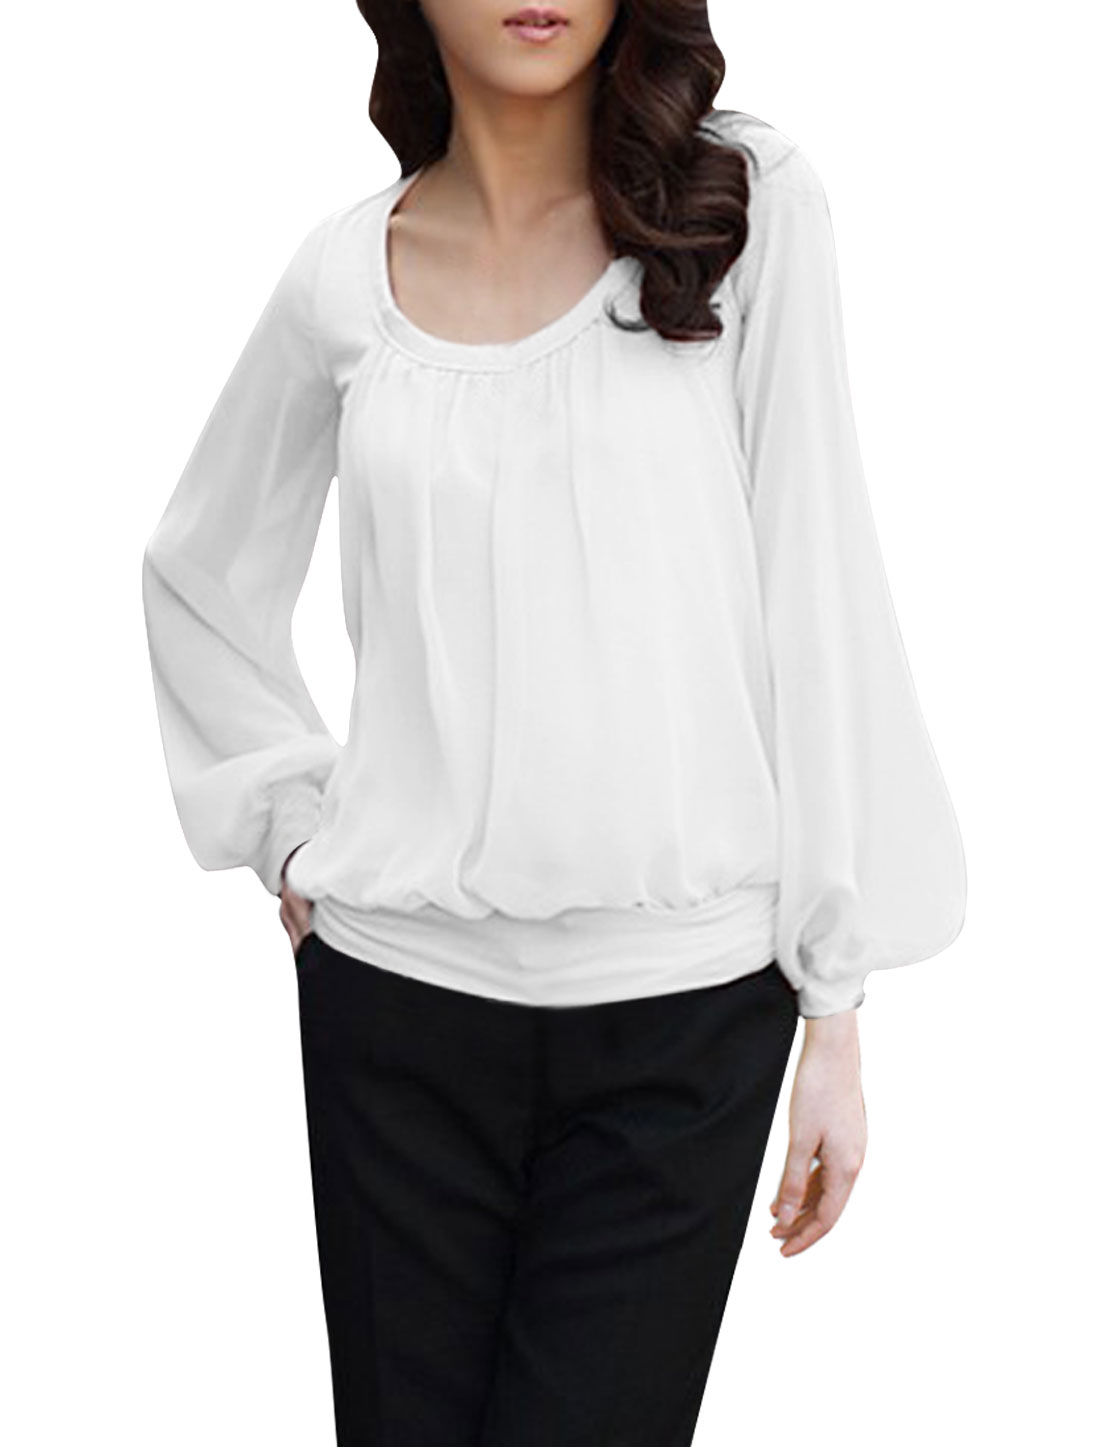 Ladies Long Sleeve Semi Sheer White Chiffon Patch Layered Tops Blouse XS